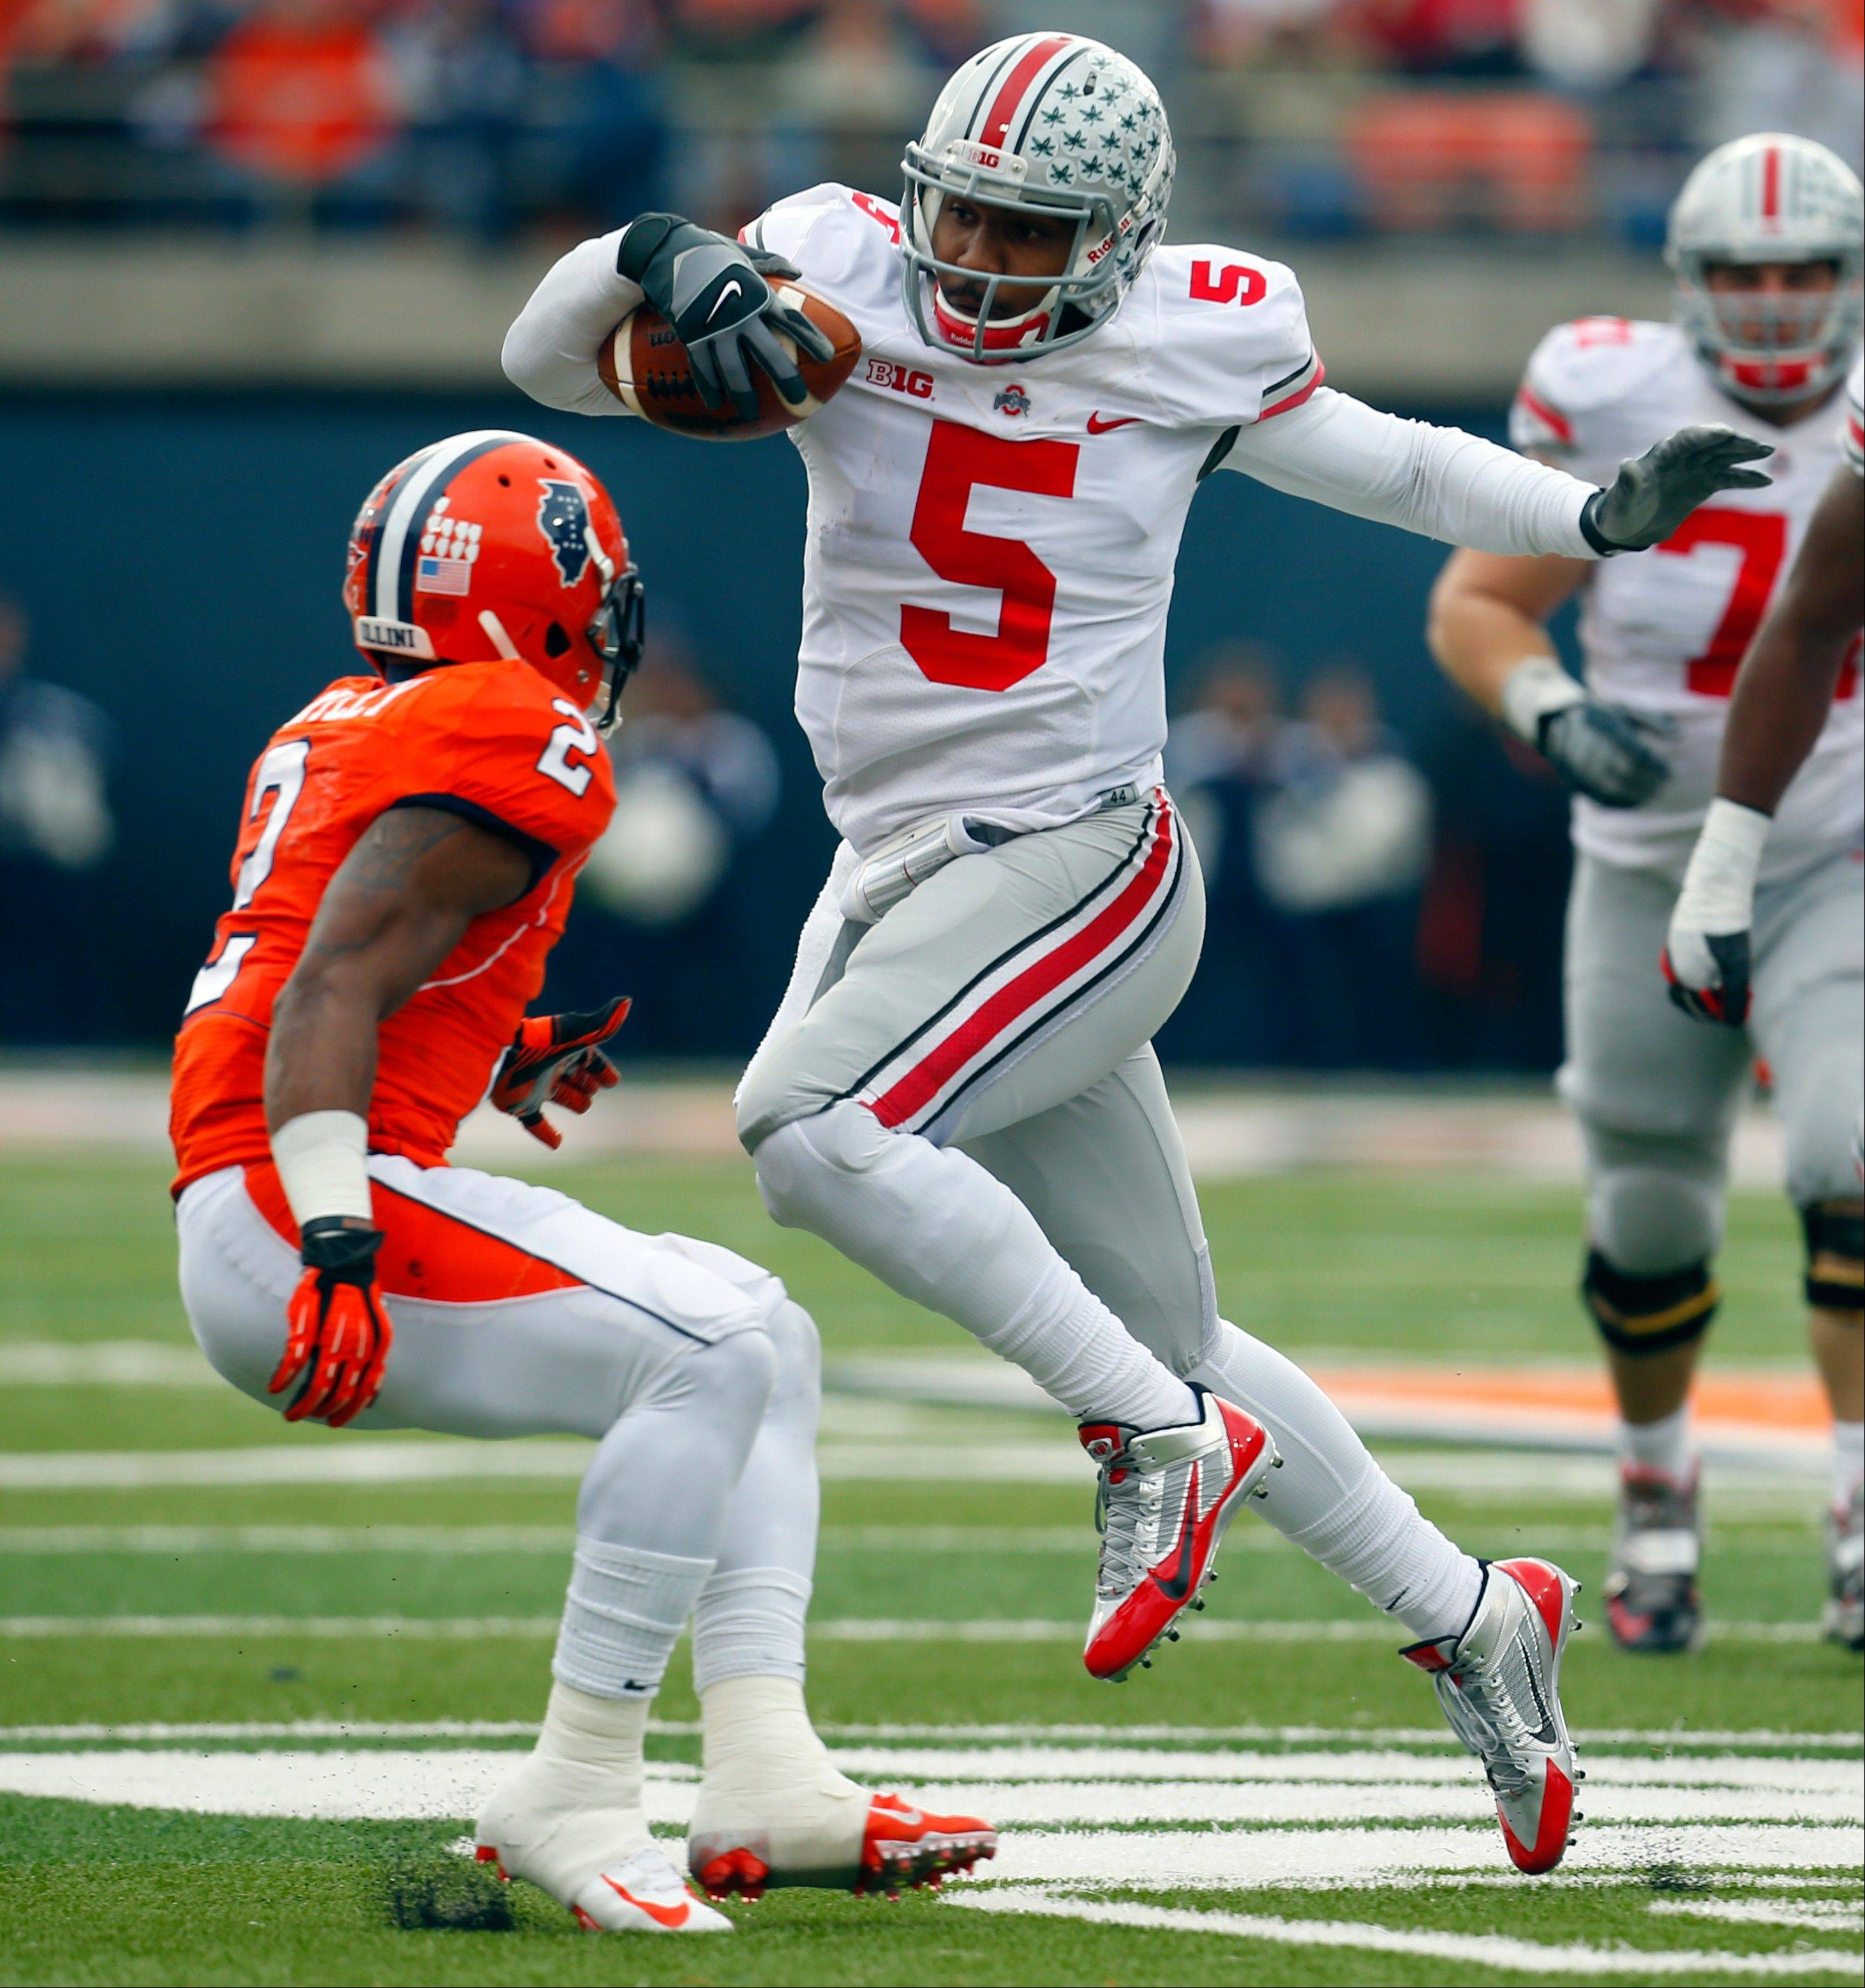 Ohio State quarterback Braxton Miller tries to avoid Illinois defensive back V'Angelo Bentley during the first half of last Saturday's game in Champaign, Ill.